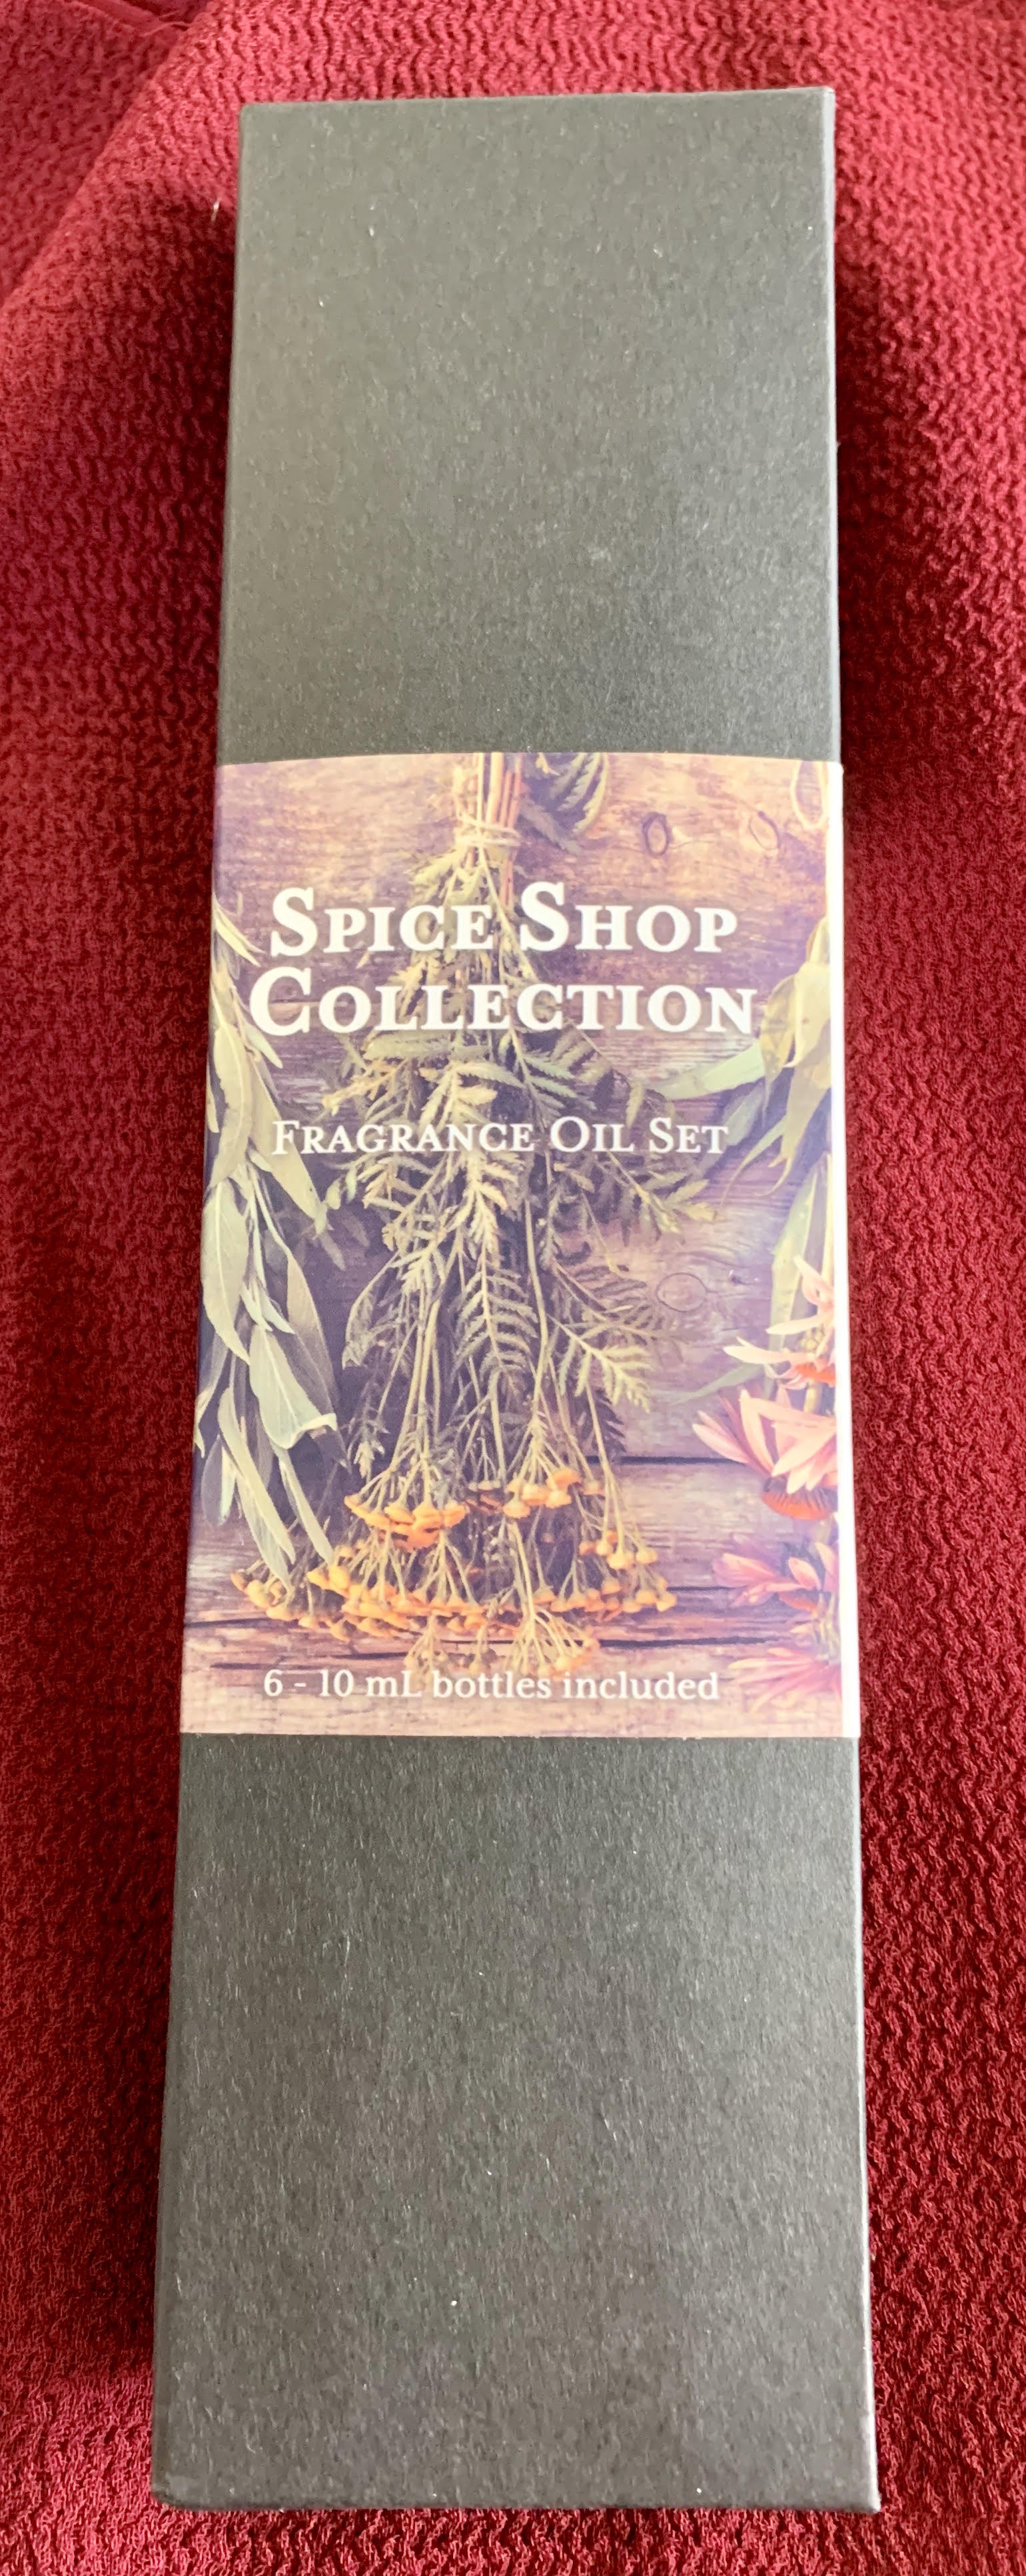 Spice Shop Collection - Fragrance Oil